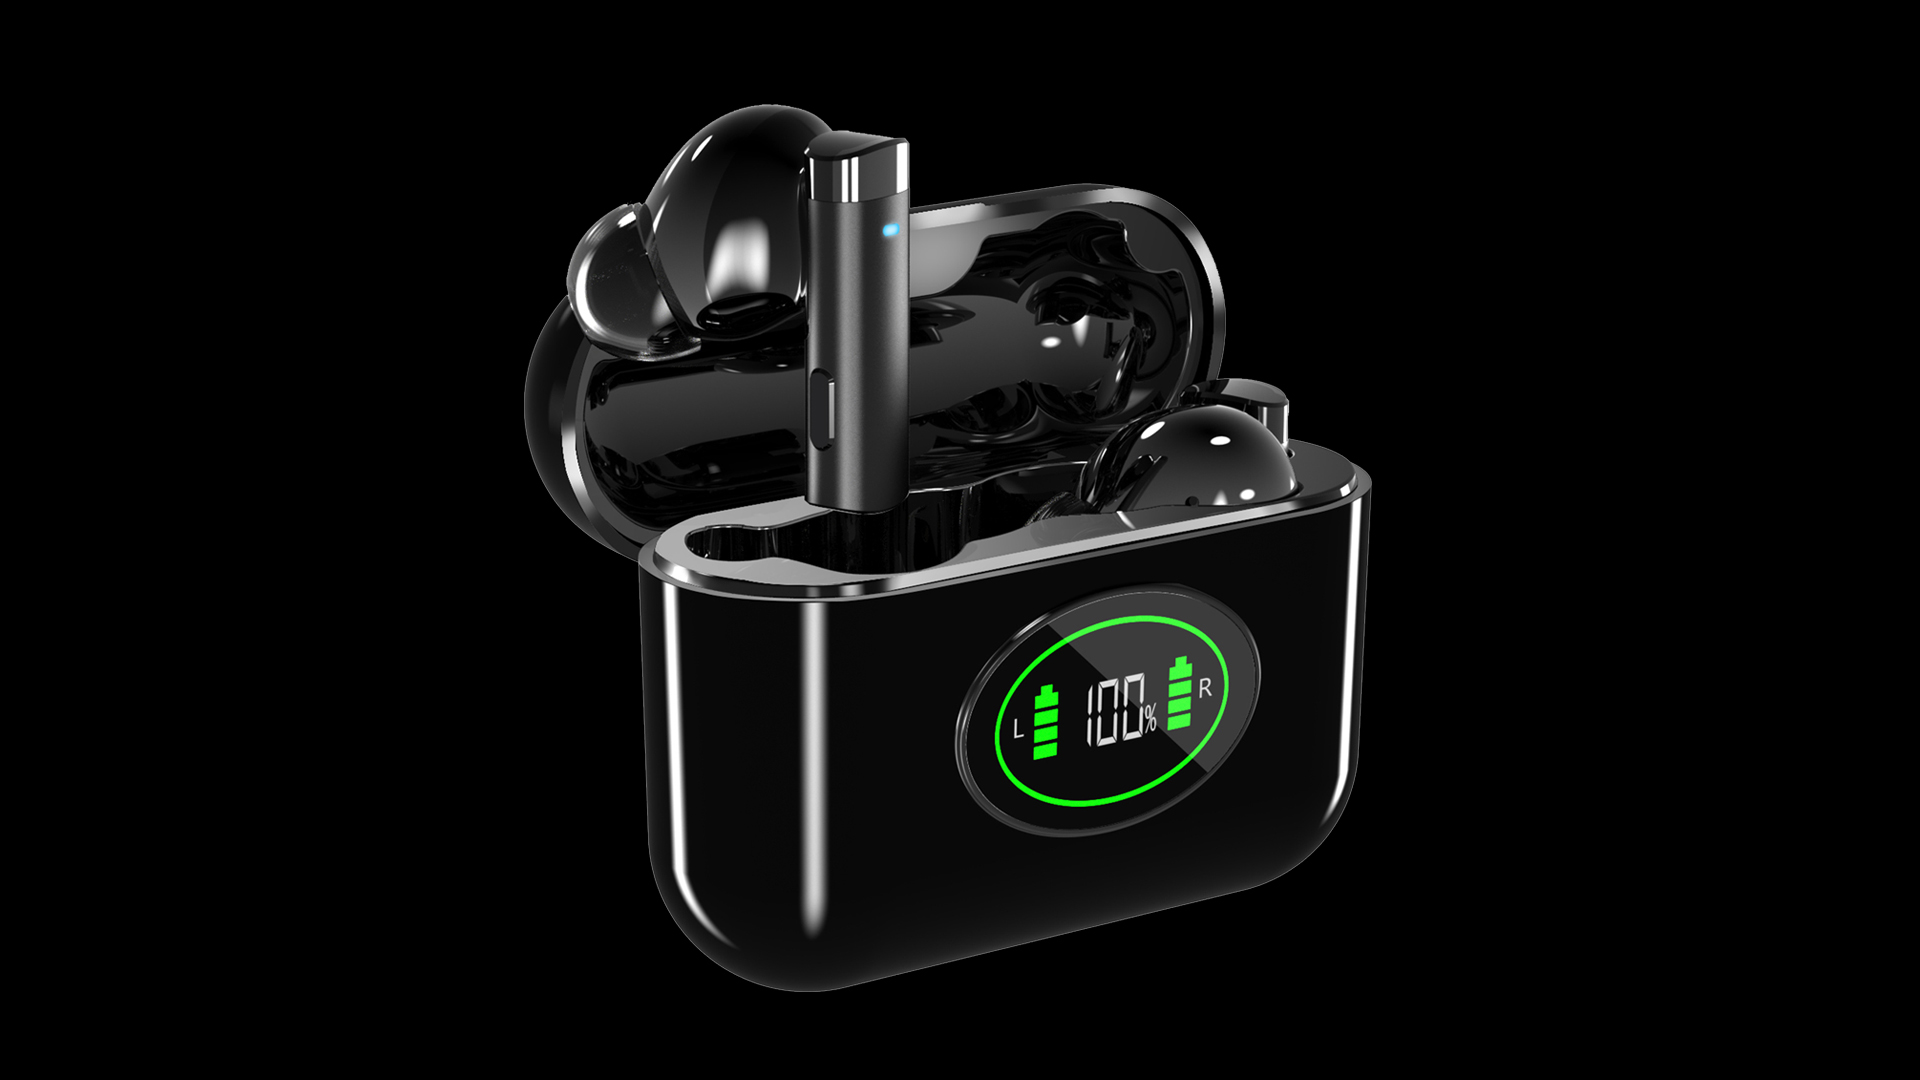 H1 Pro TWS Earphone Wireless Bluetooth Earphones Gaming Headset Stereo Bass With Mic Noise Reduction